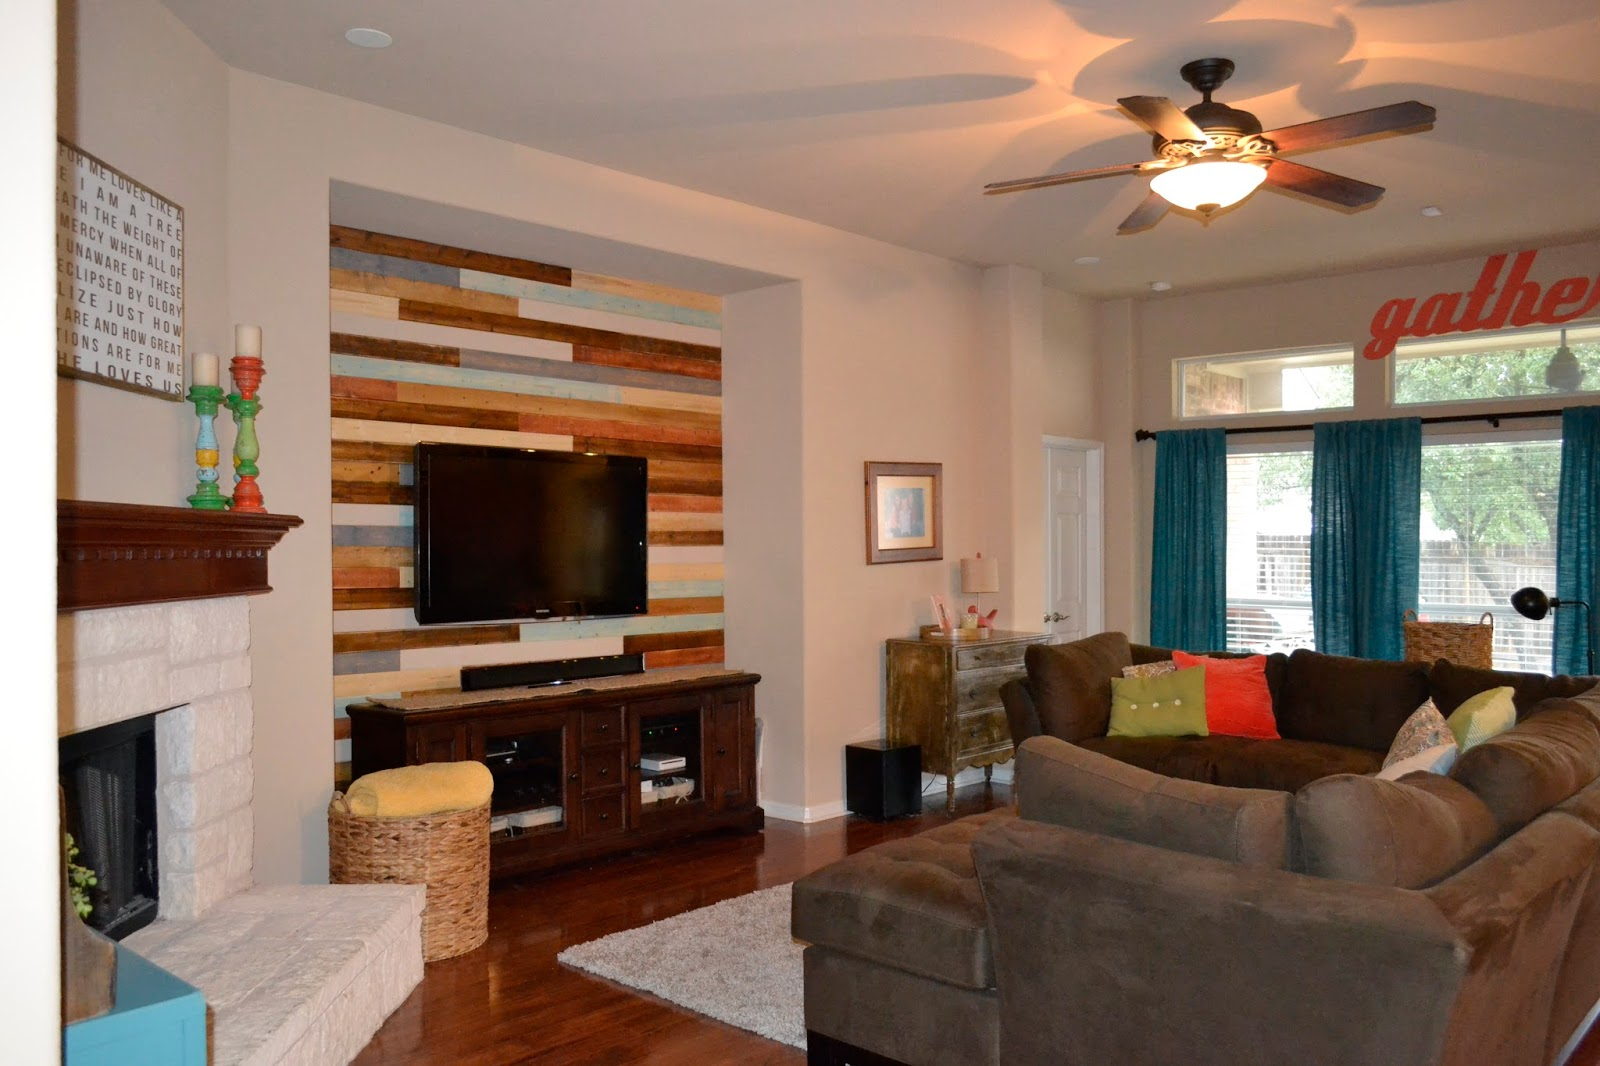 Your Little Birdie: Wood Plank Wall- How to make it Random